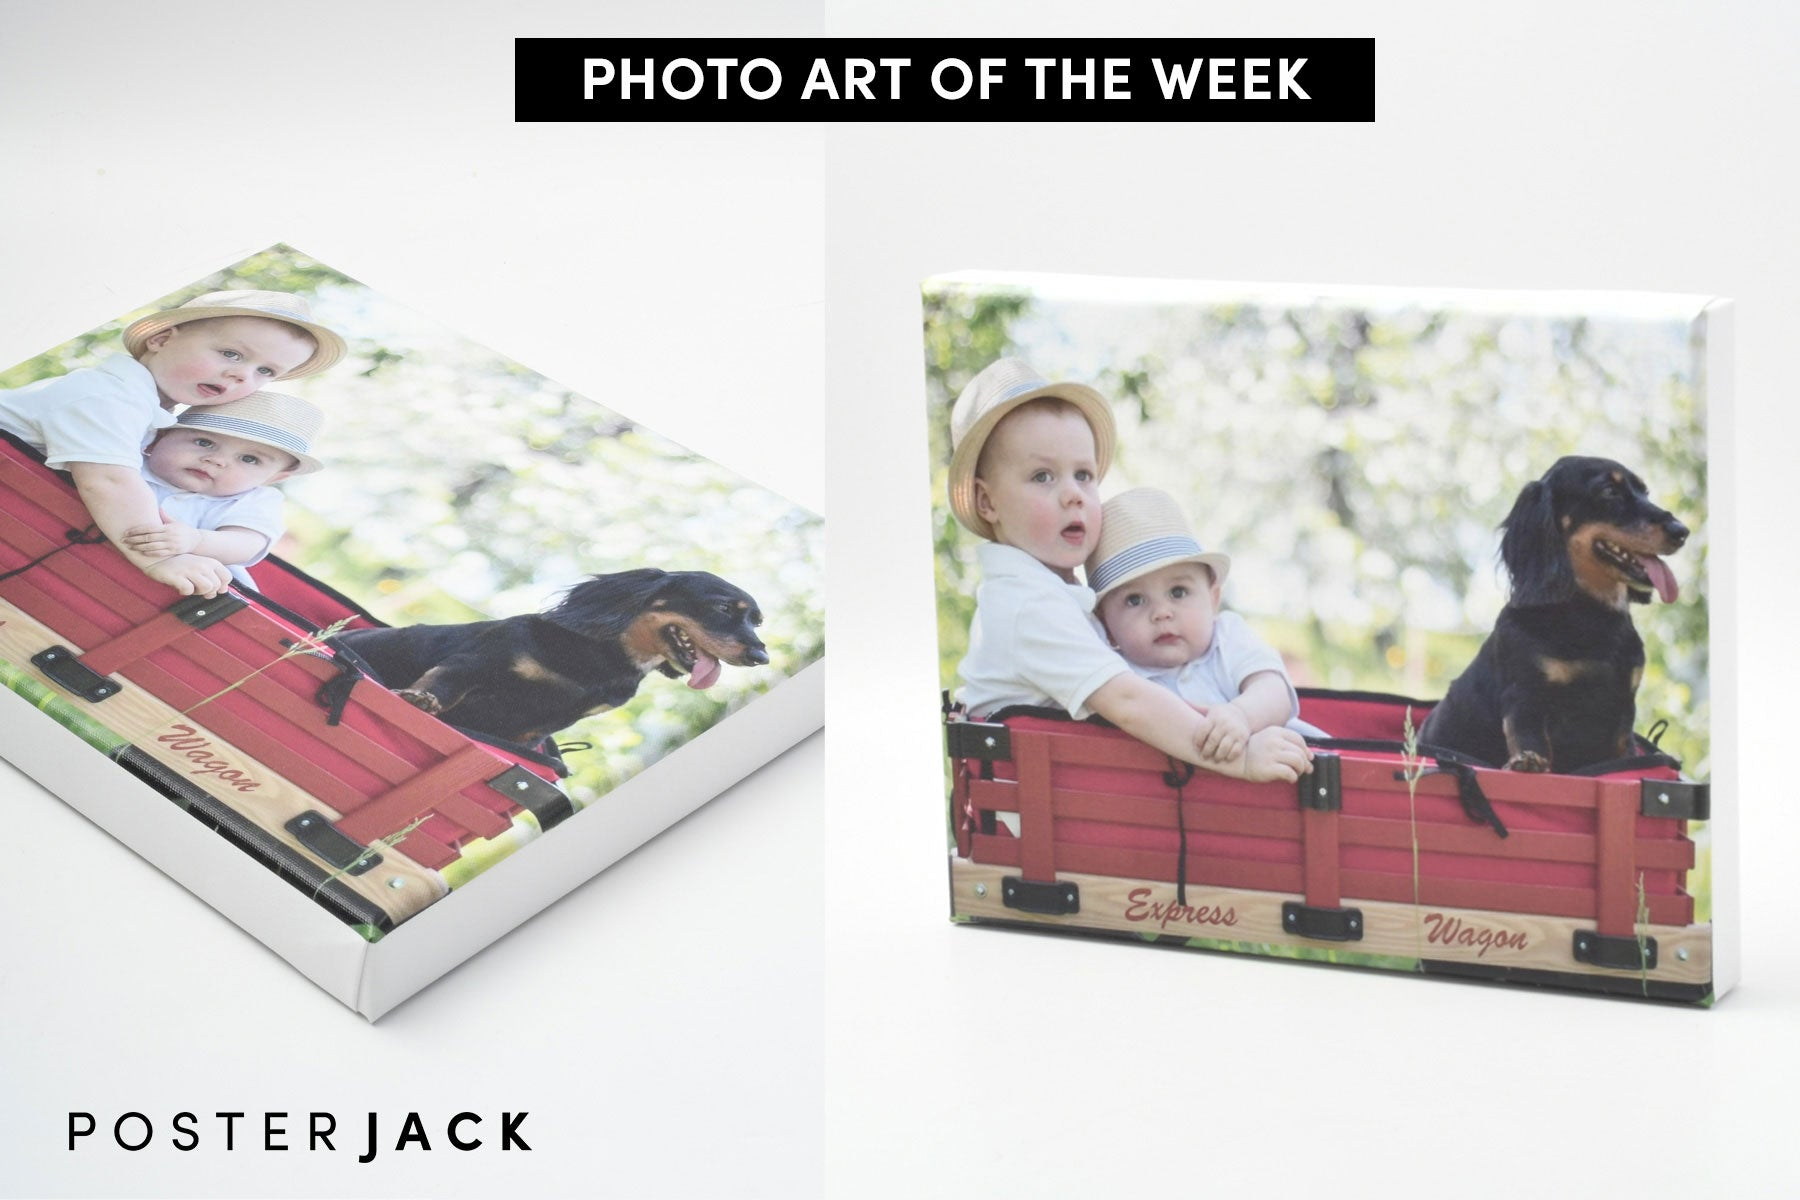 Posterjack Photo Art of The Week Canvas Print of Brothers and Dog in Wagon